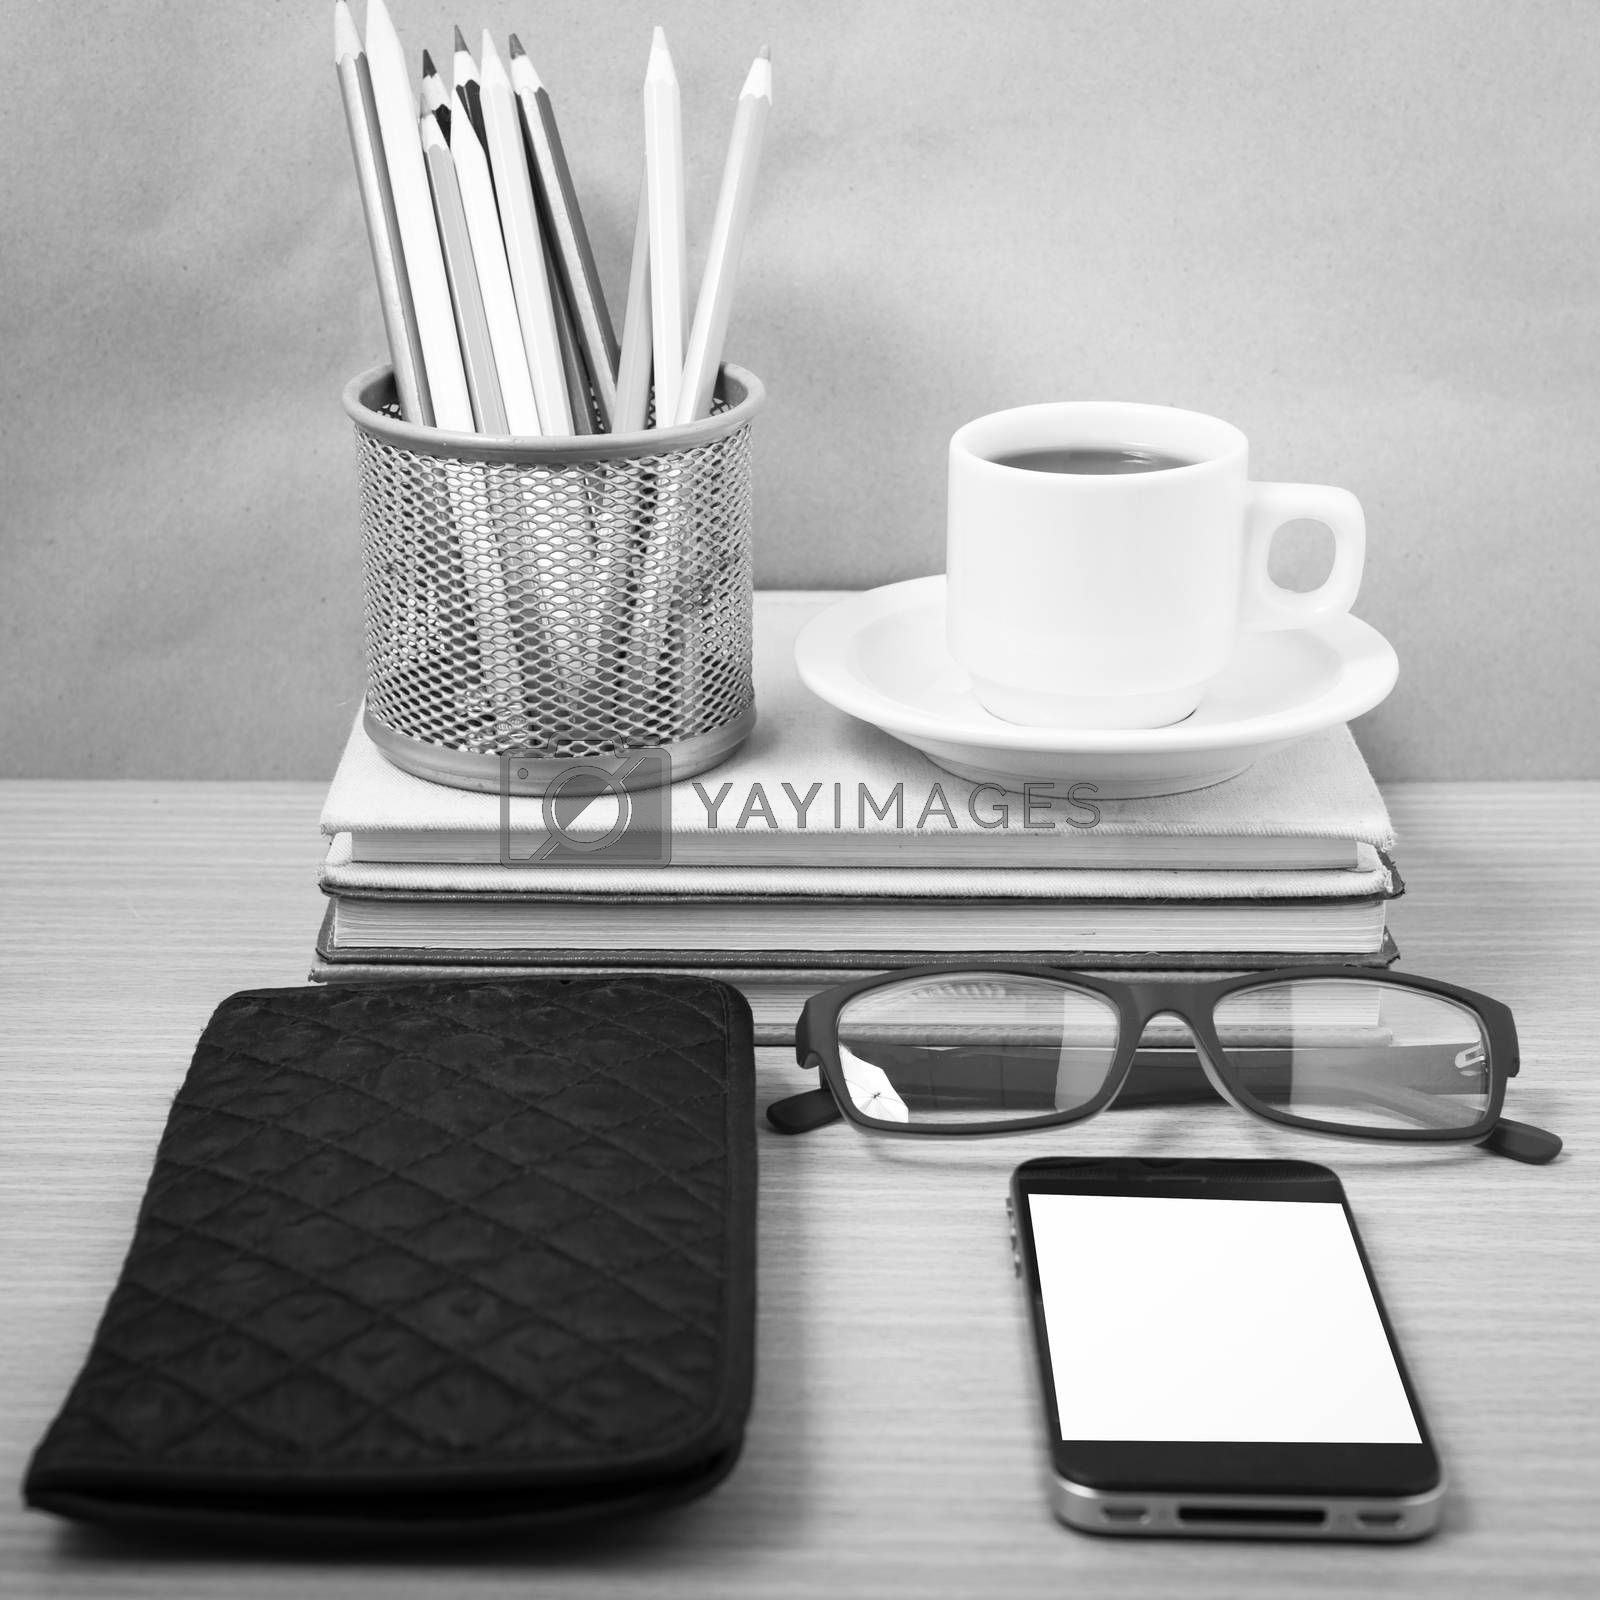 office desk : coffee with phone,stack of book,eyeglasses,wallet,color pencil box on wood background black and white color